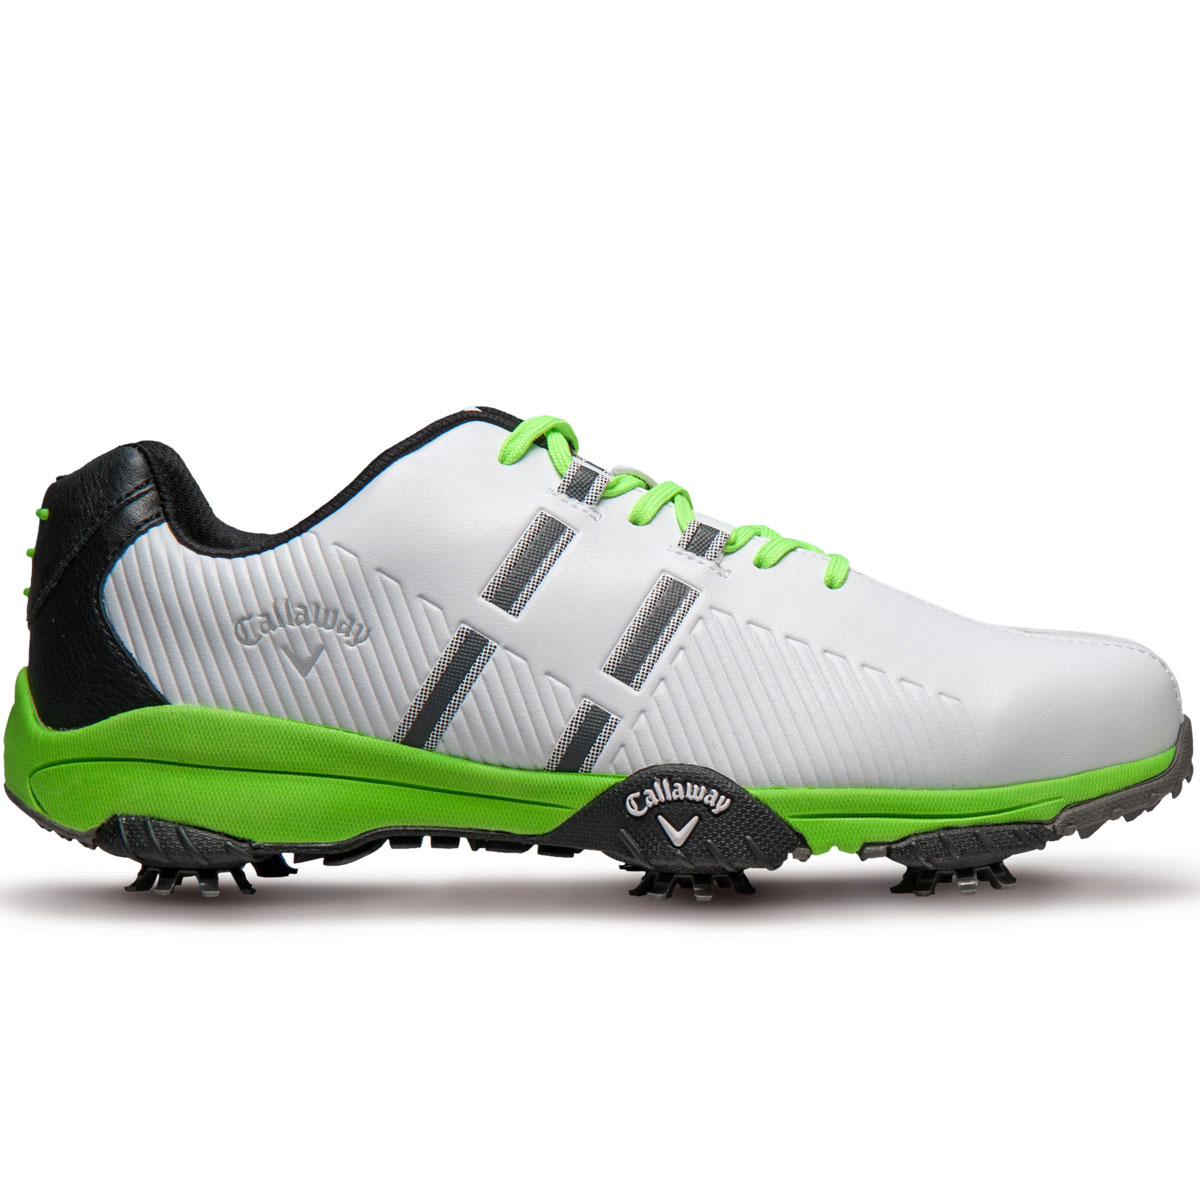 Callaway Golf Mens Chev Mulligan Waterproof Golf Shoes